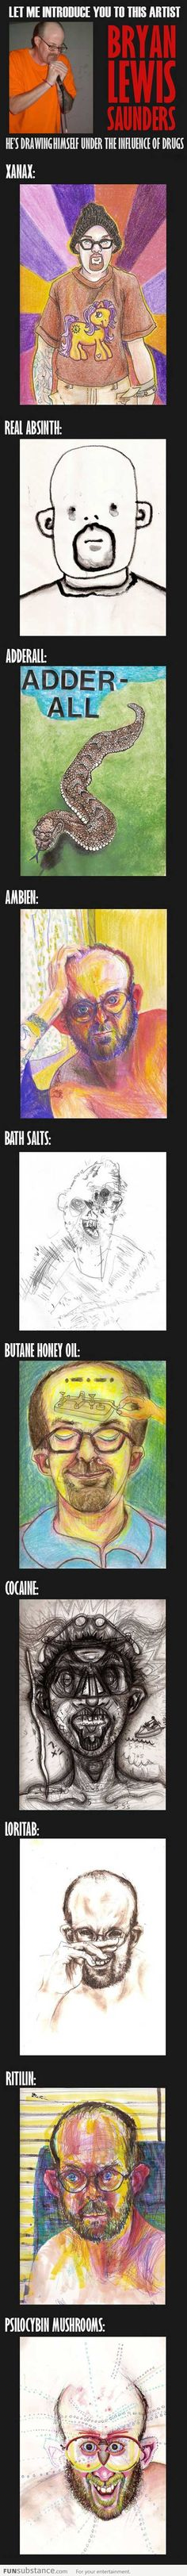 Artist draws himself under the influence of drugs